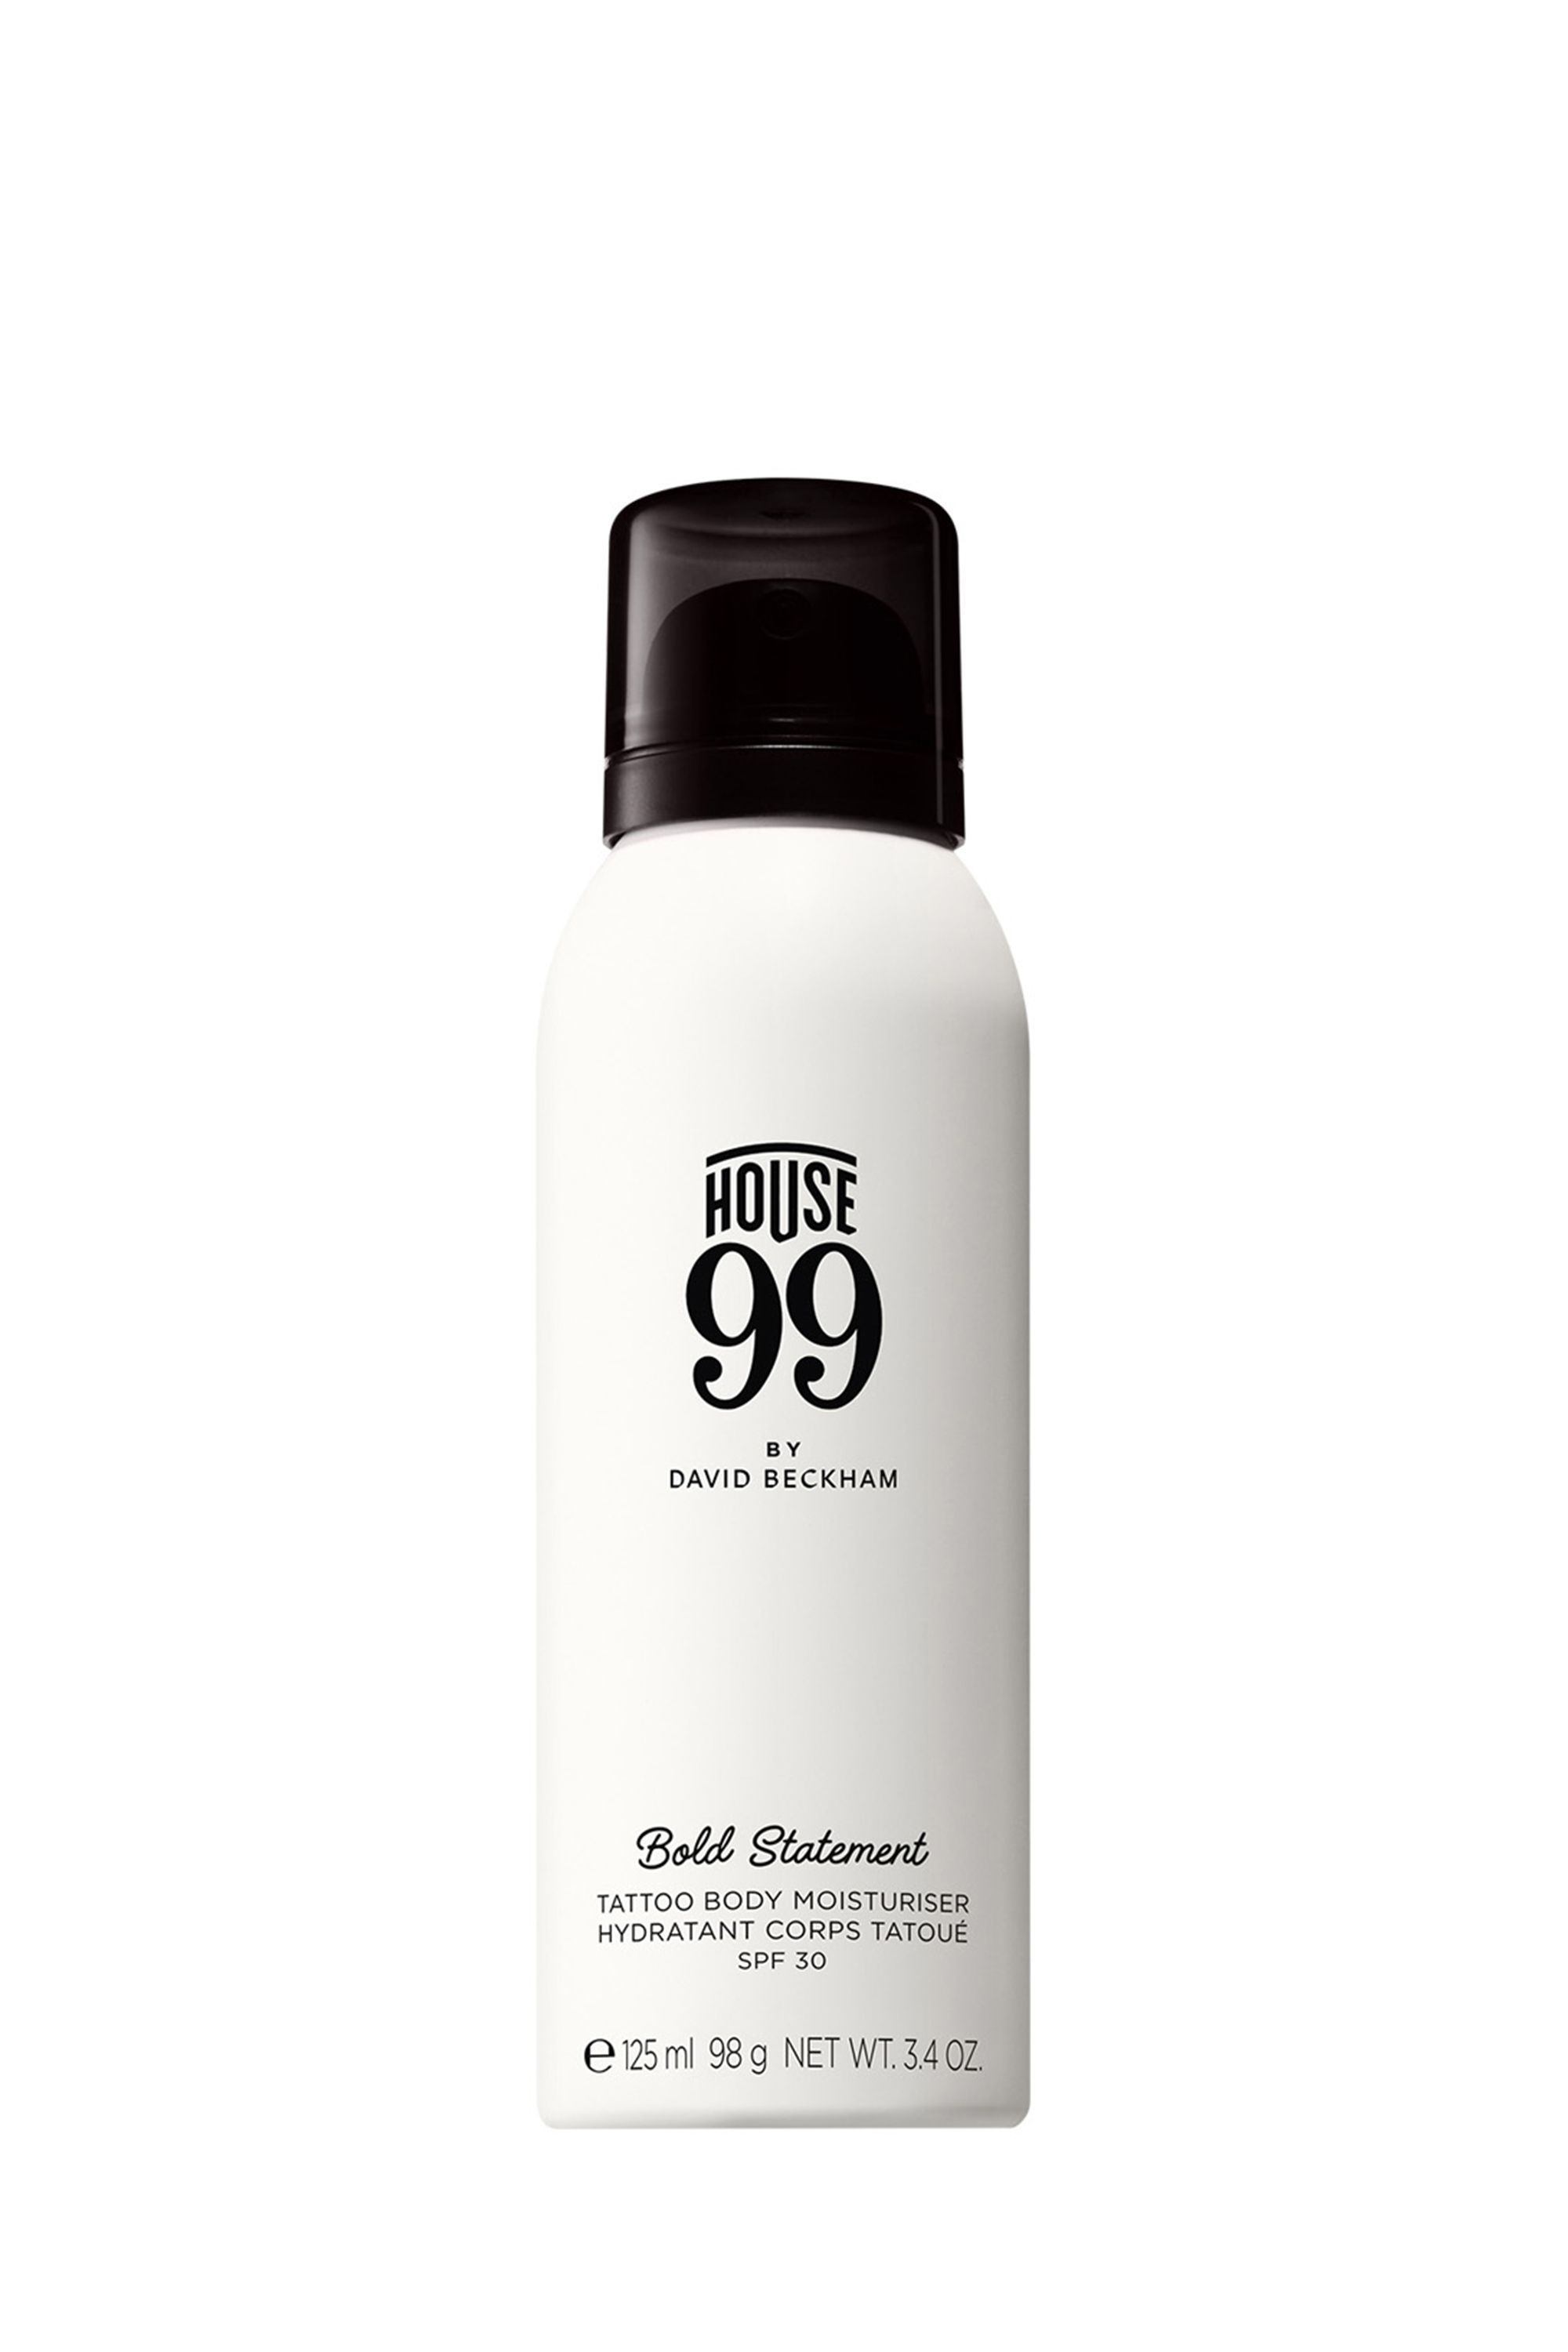 House 99 by David Beckham Bold Statement Tattoo Body Moisturizing Cream ulta.com $26.00 SHOP NOW David Beckham (a heavily tattooed man himself) has a beauty line that's a hidden gem. The cream was designed specifically for hydrating and protecting your skin art.